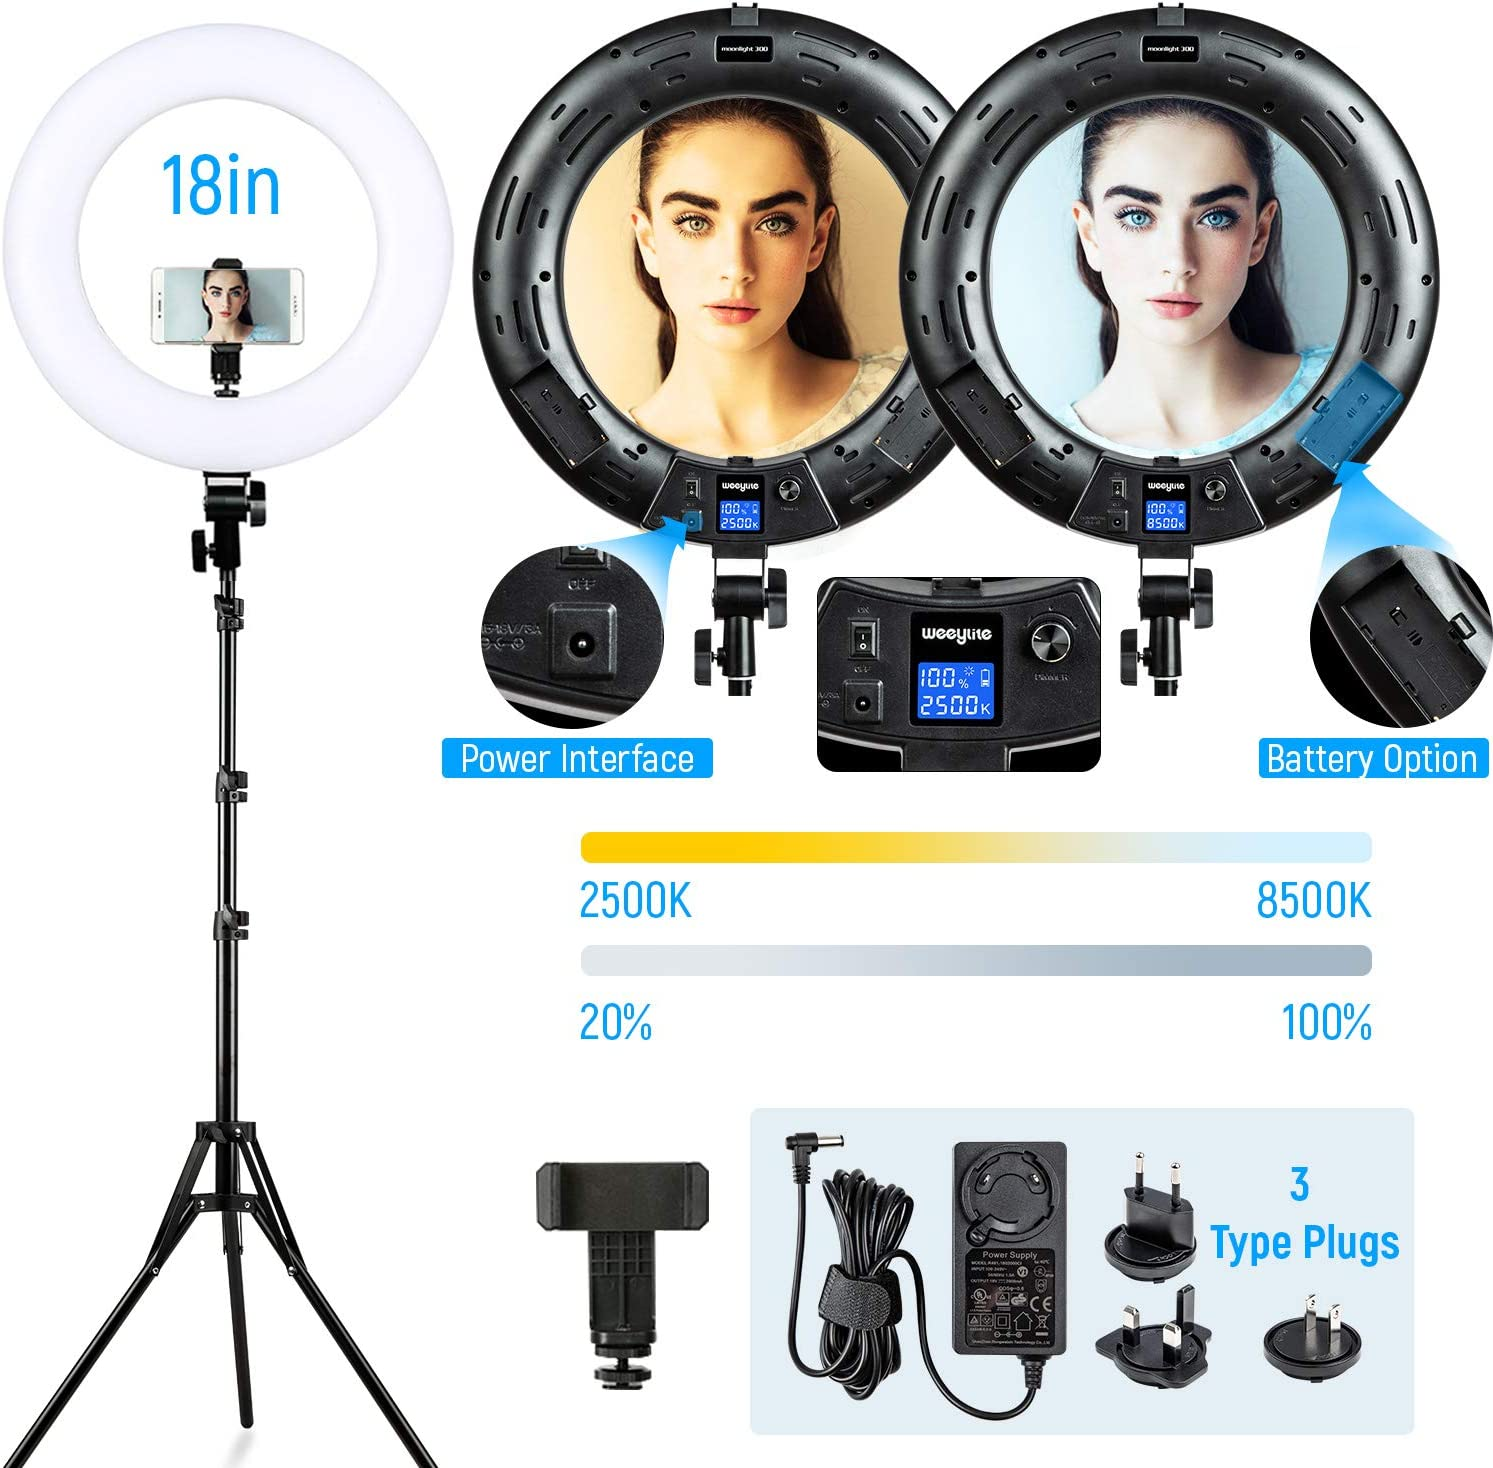 """Ring Light with Stand Phone Holder, 18"""" Bi-Color Dimmable 2500K-8500K LED Ring Light Makeup Beauty CRI≥95 with LCD Panel 3 Type Plugs DC Adapter for YouTube Video Livestream Selfie Portrait Shooting"""